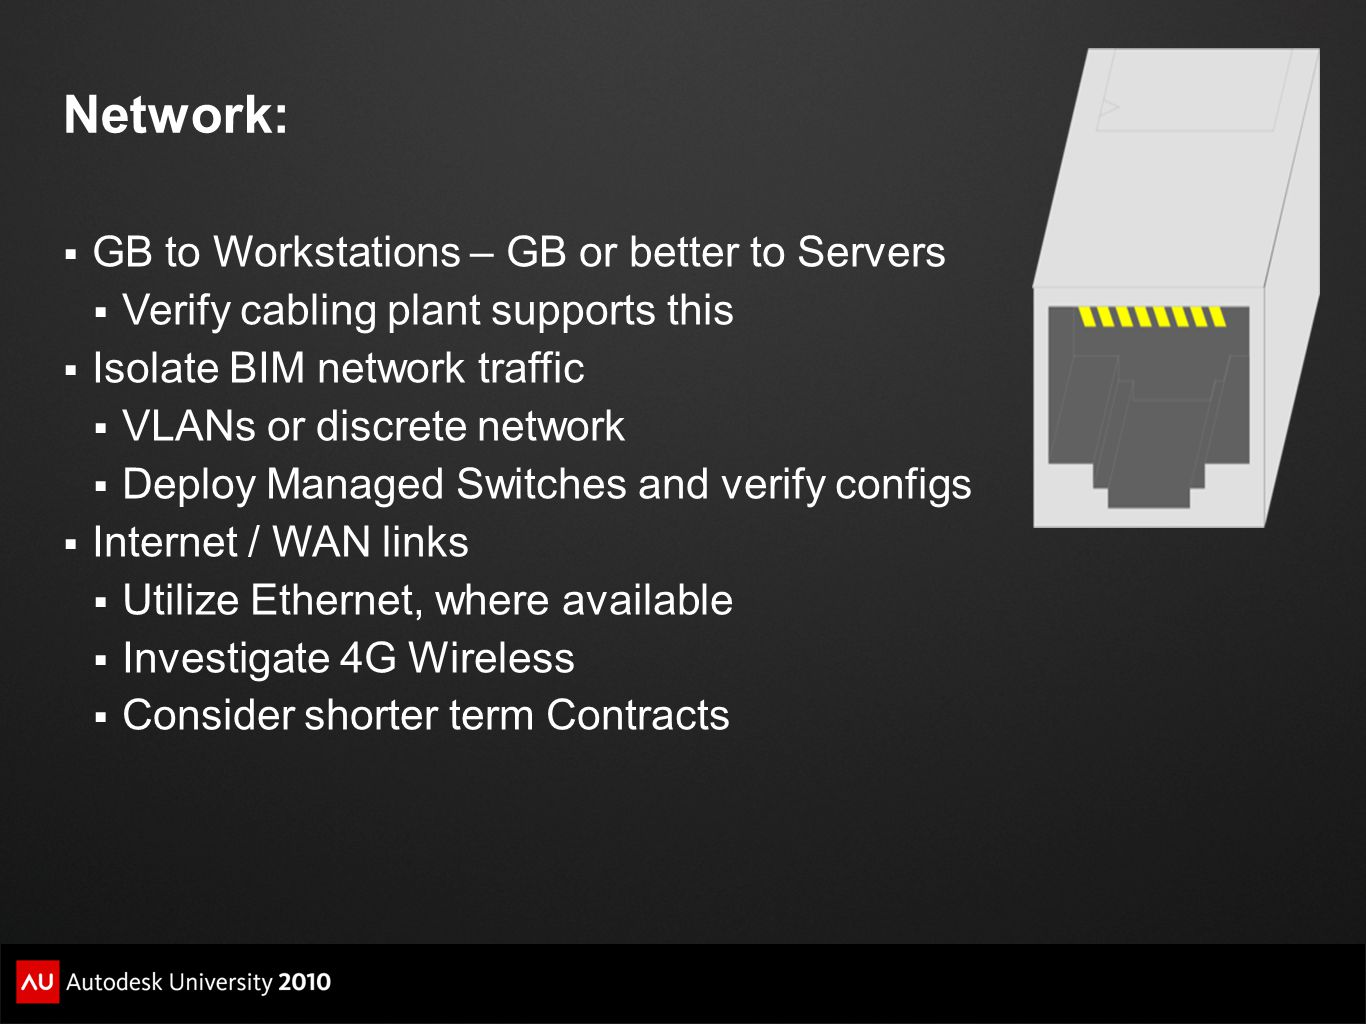 Network:  GB to Workstations – GB or better to Servers  Verify cabling plant supports this  Isolate BIM network traffic  VLANs or discrete network  Deploy Managed Switches and verify configs  Internet / WAN links  Utilize Ethernet, where available  Investigate 4G Wireless  Consider shorter term Contracts